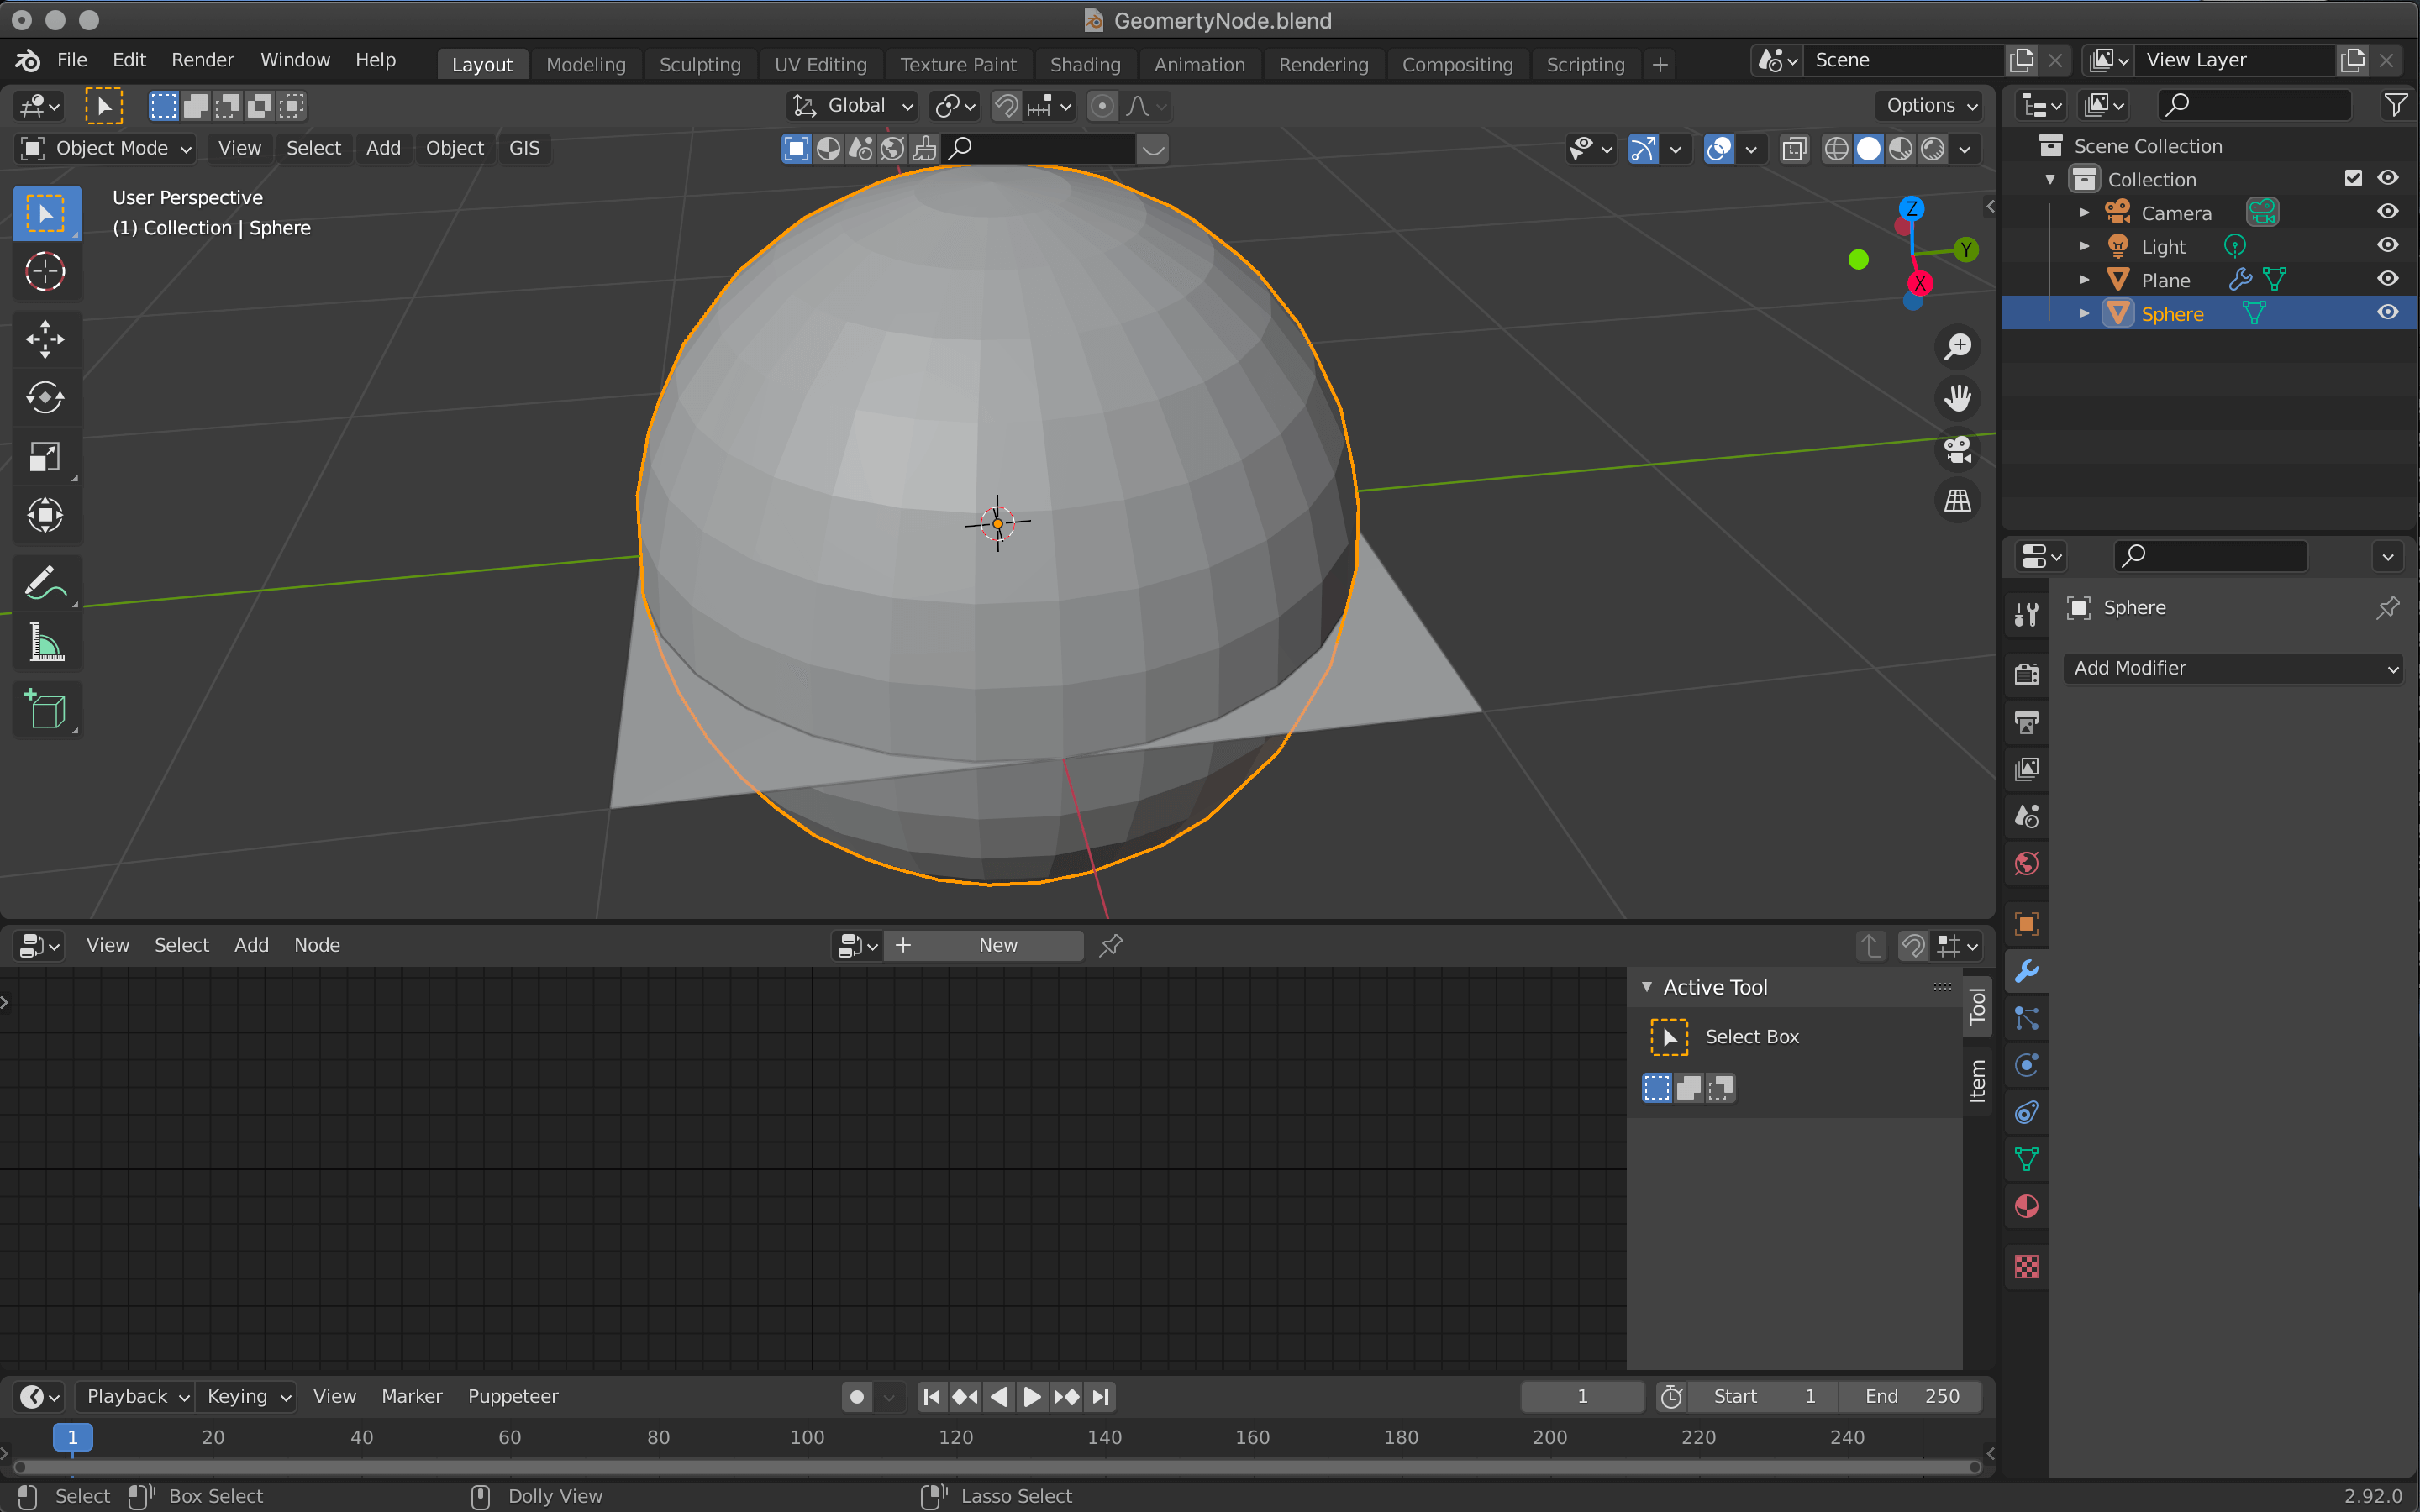 Switch to object mode by pressing [Tab], then [Shift+A]→Sphere.